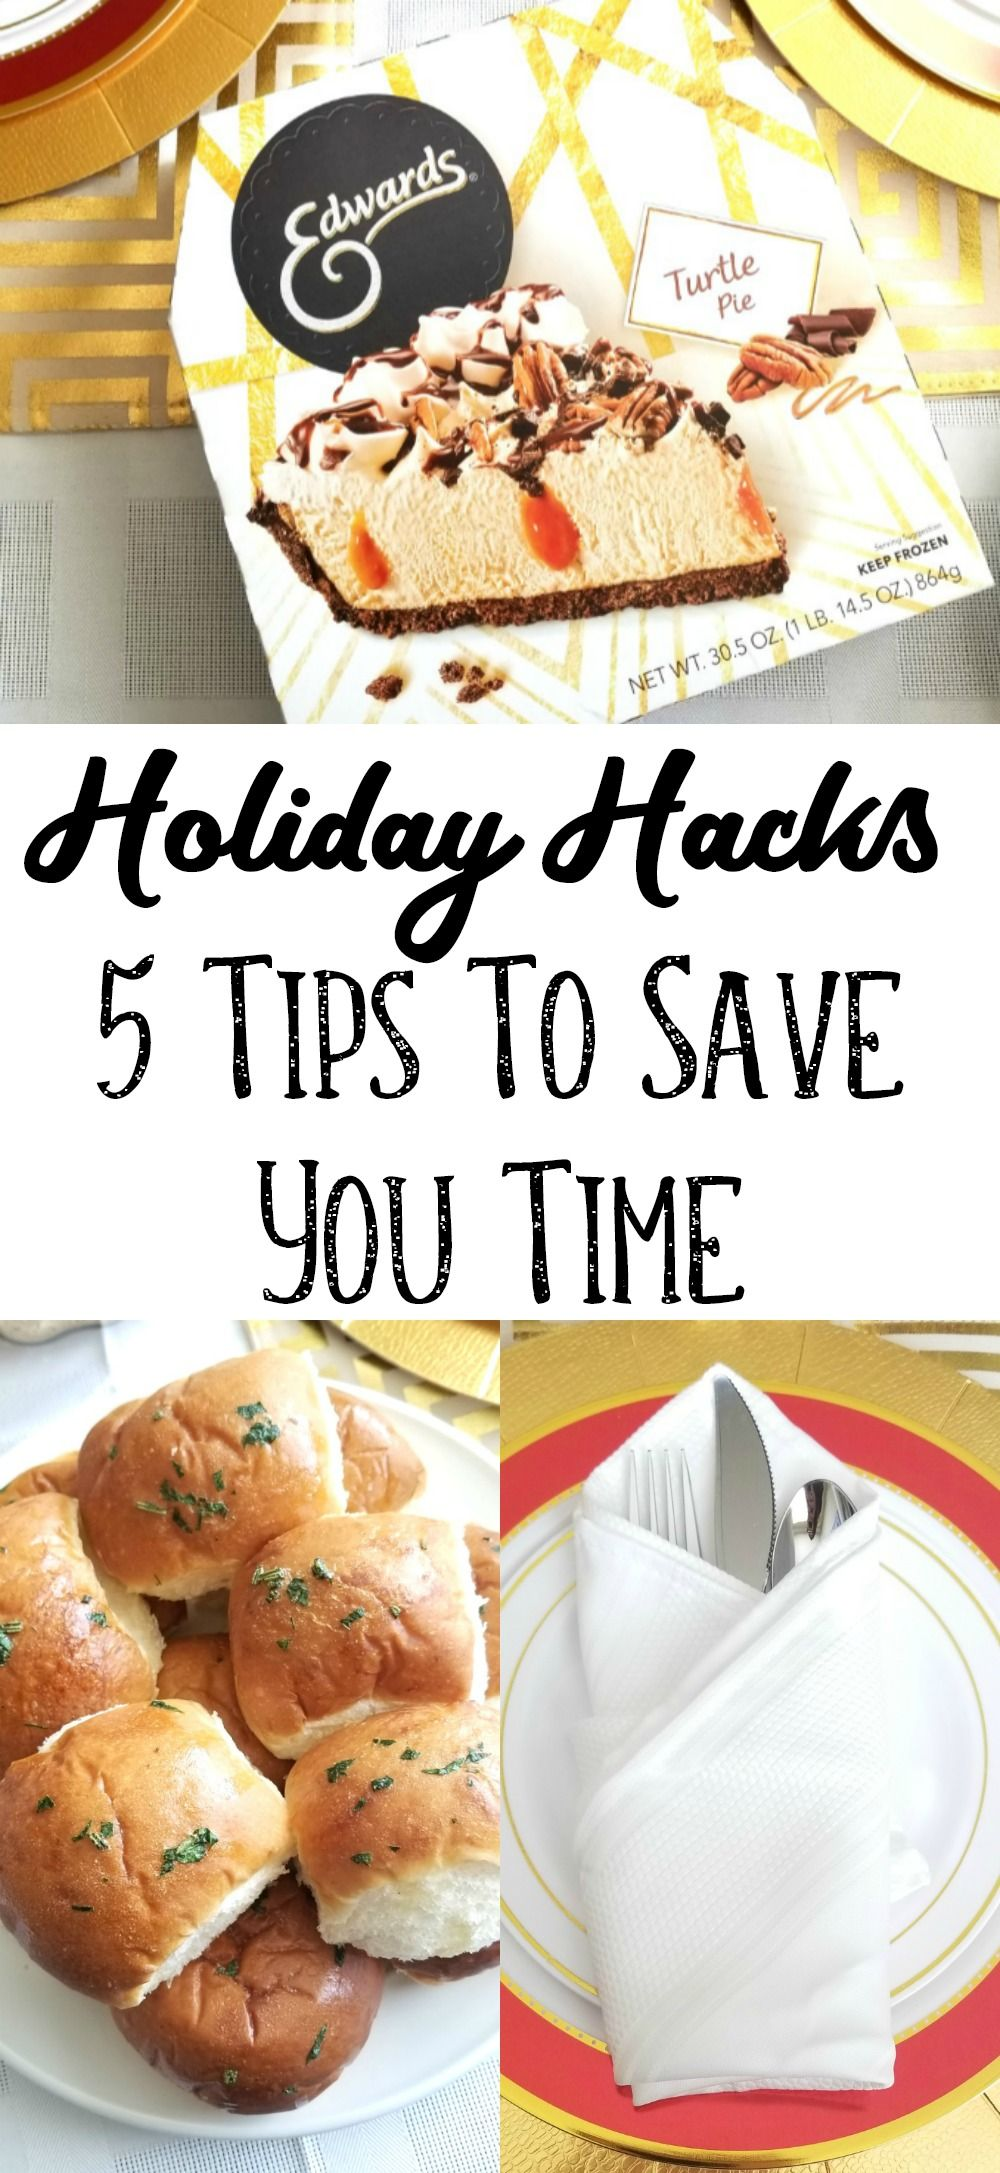 5 Holiday Hacks That Save You Time | Holidays | Pinterest | Holiday ...